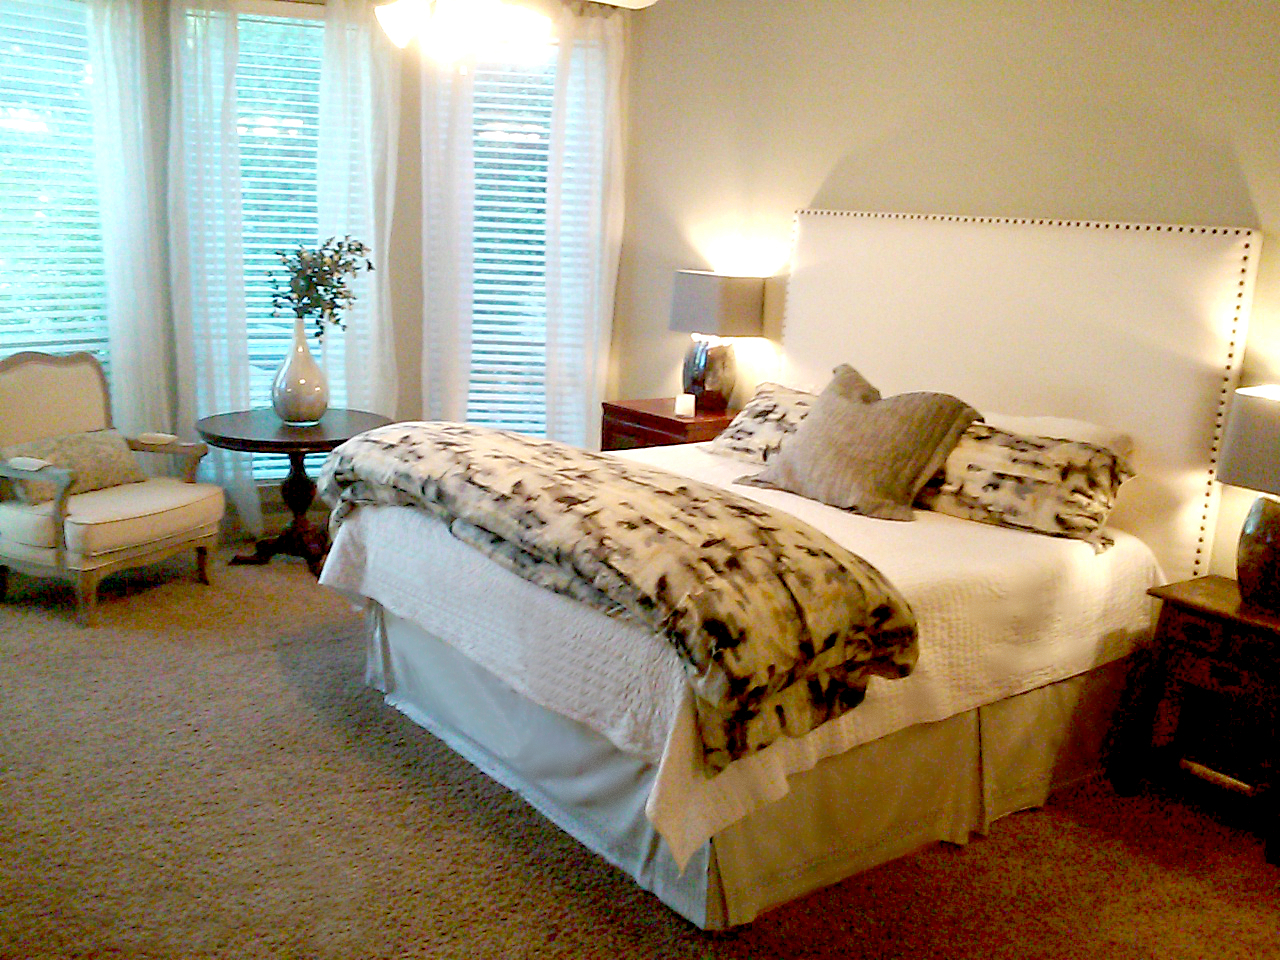 jaya home staging home staging interior decorating home